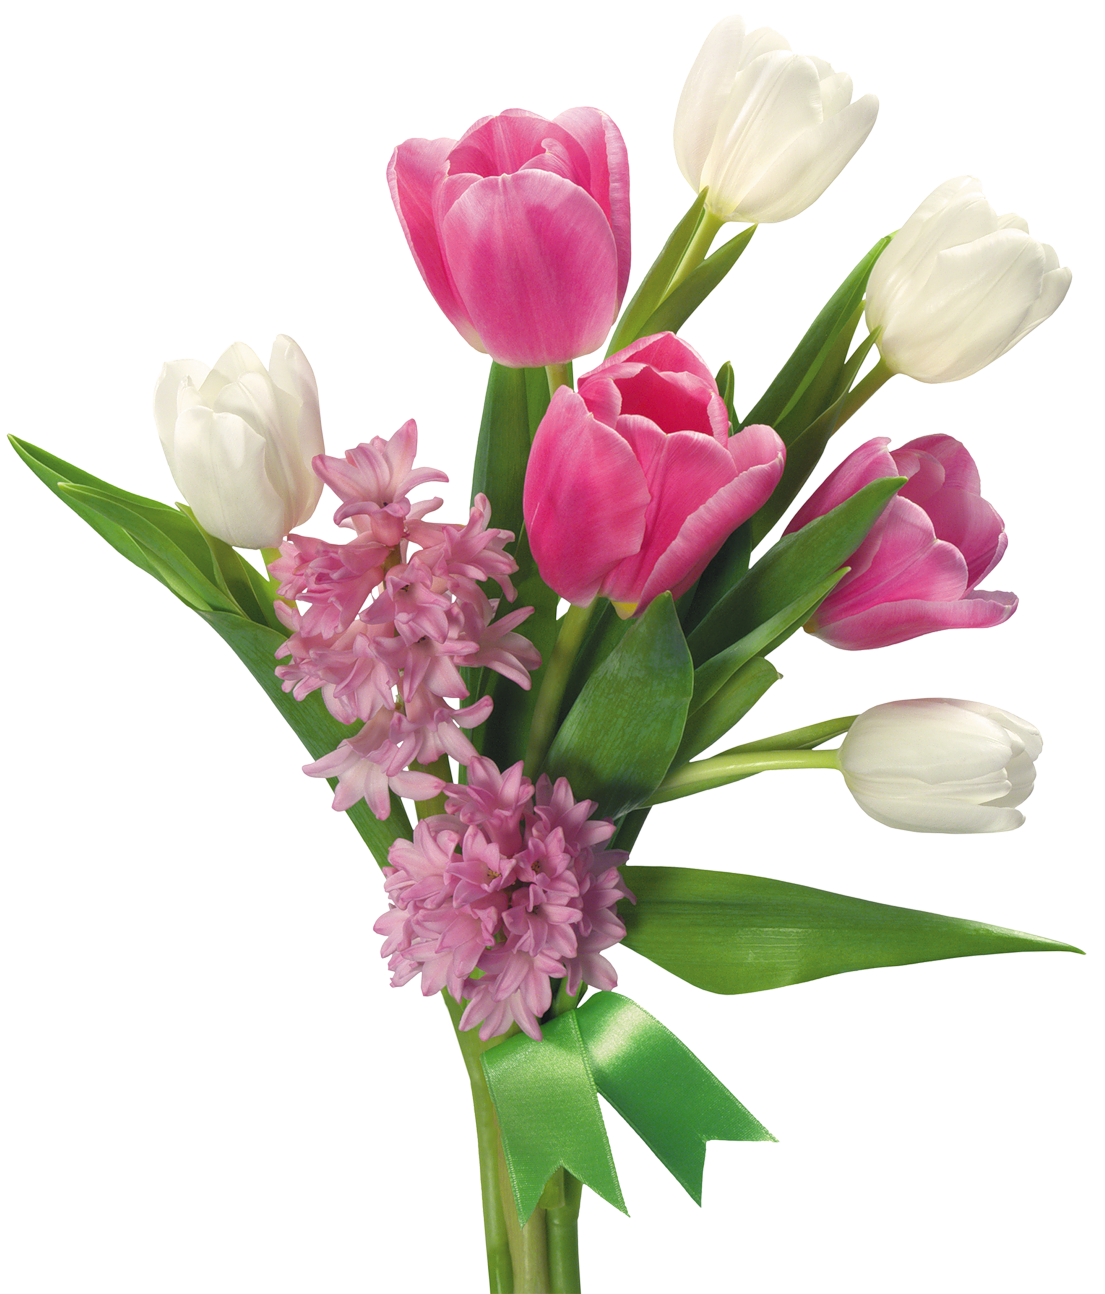 bouquet of flowers clipart no background - Clipground